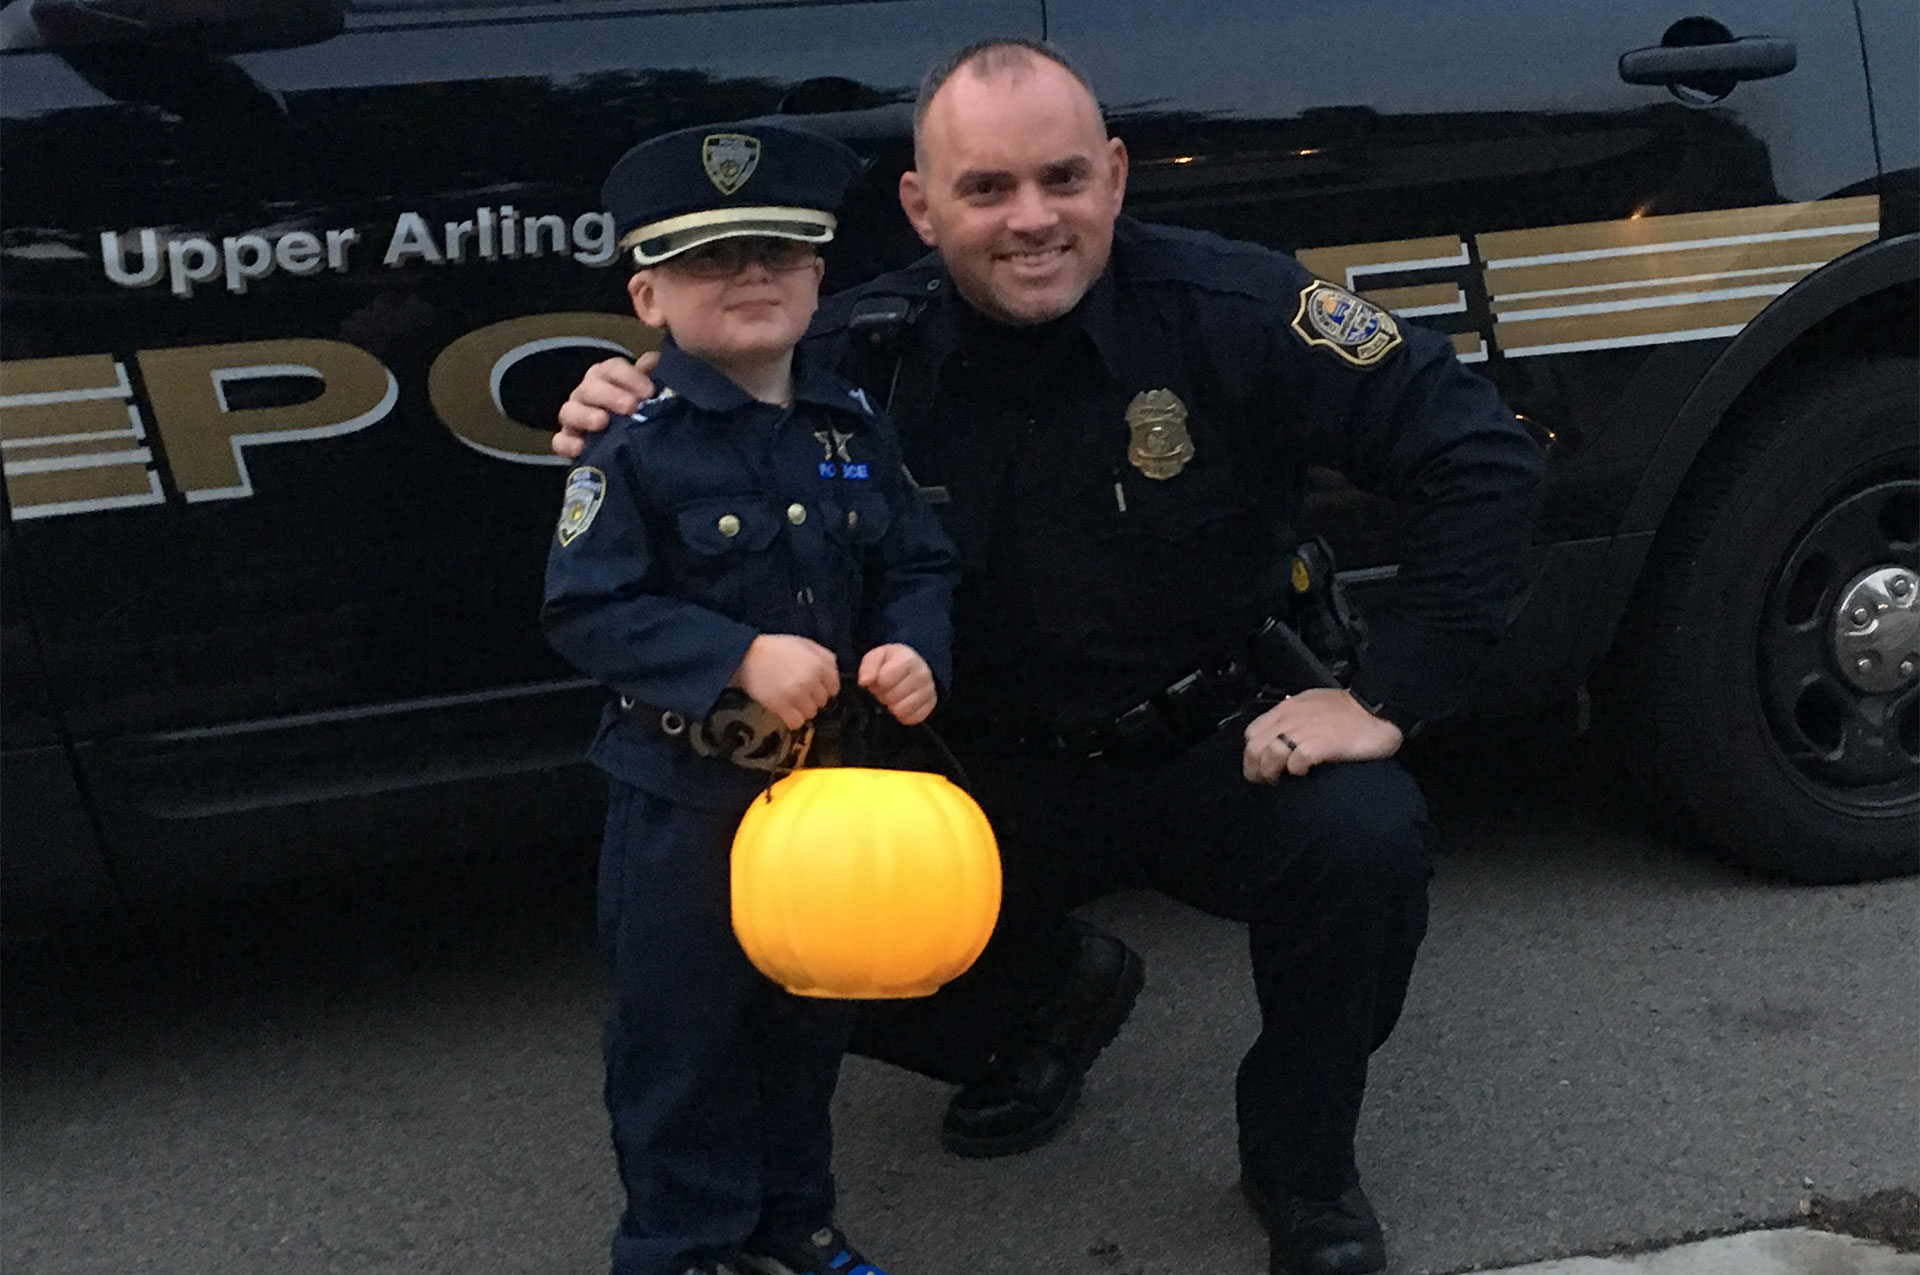 Pumpkin Patrol Officer Goodman